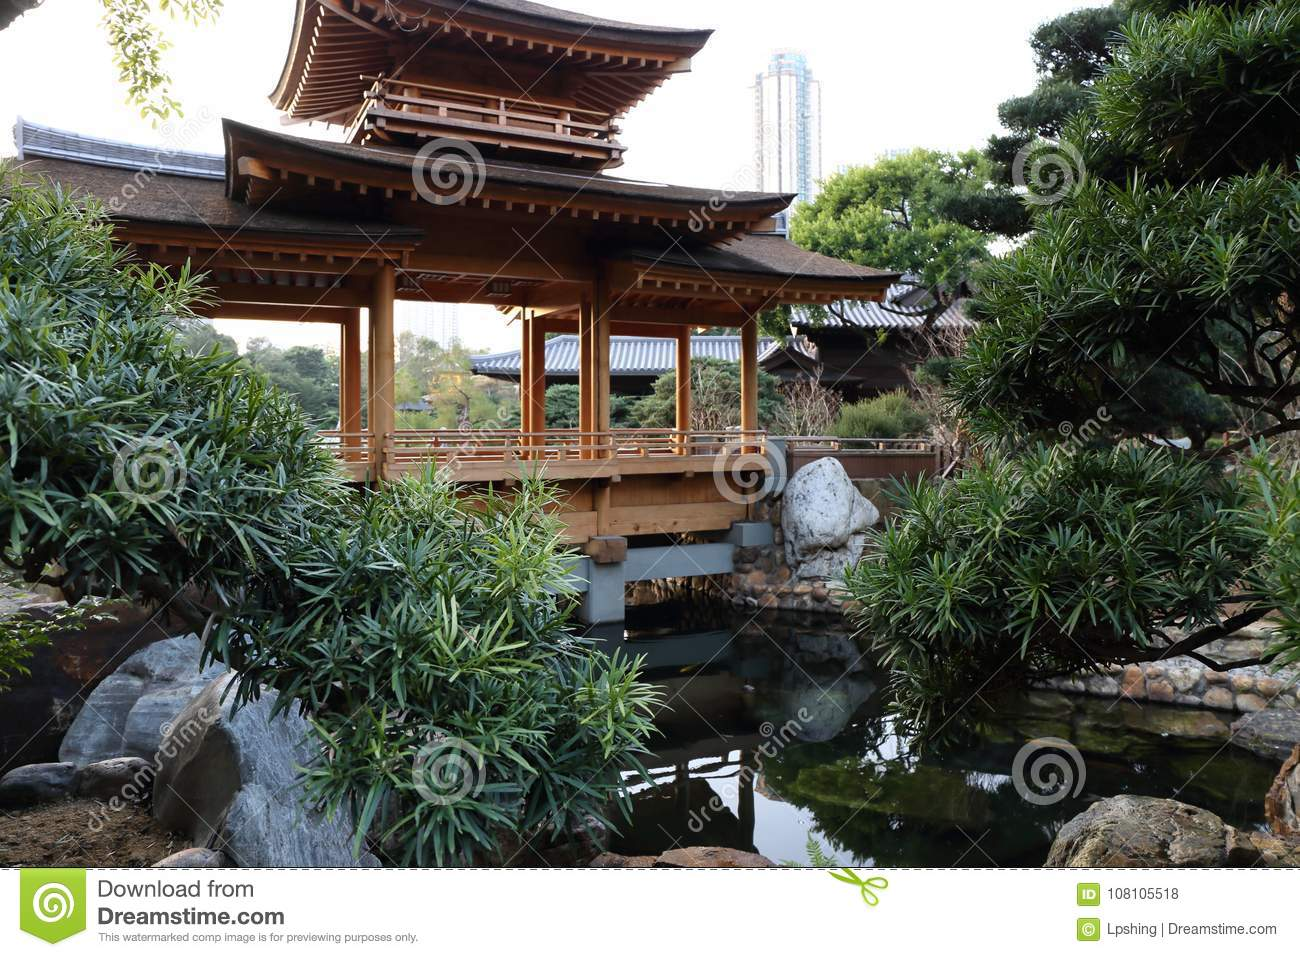 Download Chinese Style Garden Stock Photo. Image Of Europe, Photo    108105518